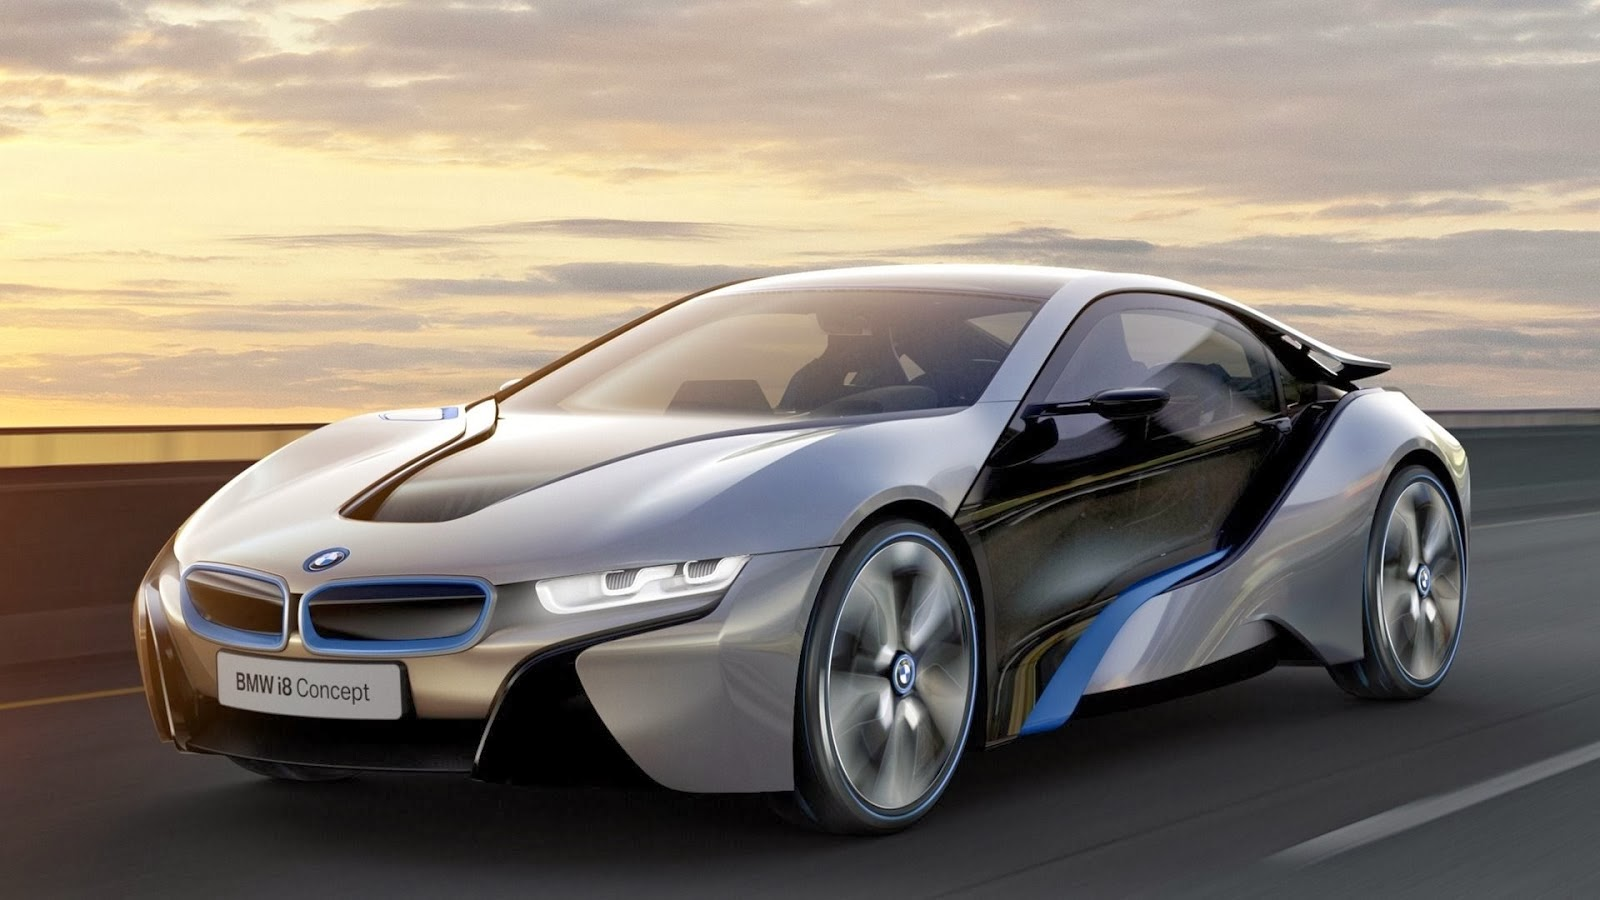 Bmw I8 Cars Hd Wallpapers 1080p Bmw I8 Cars Hd 1600x900